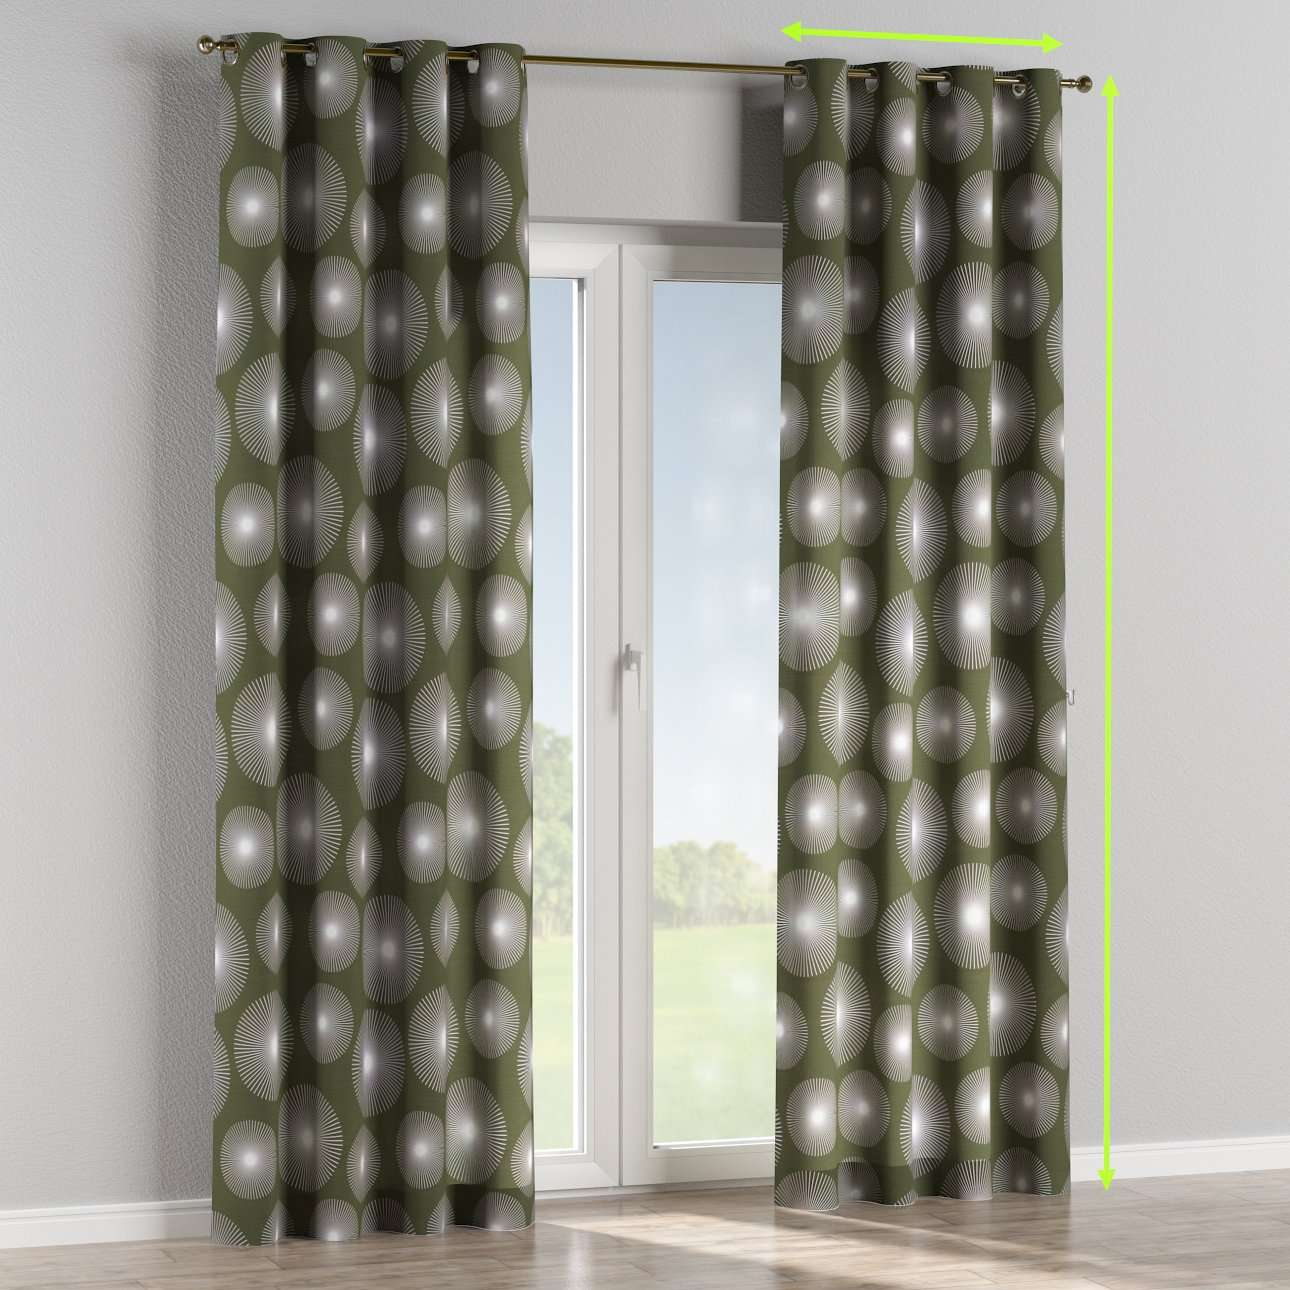 Eyelet curtains in collection Freestyle, fabric: 135-17